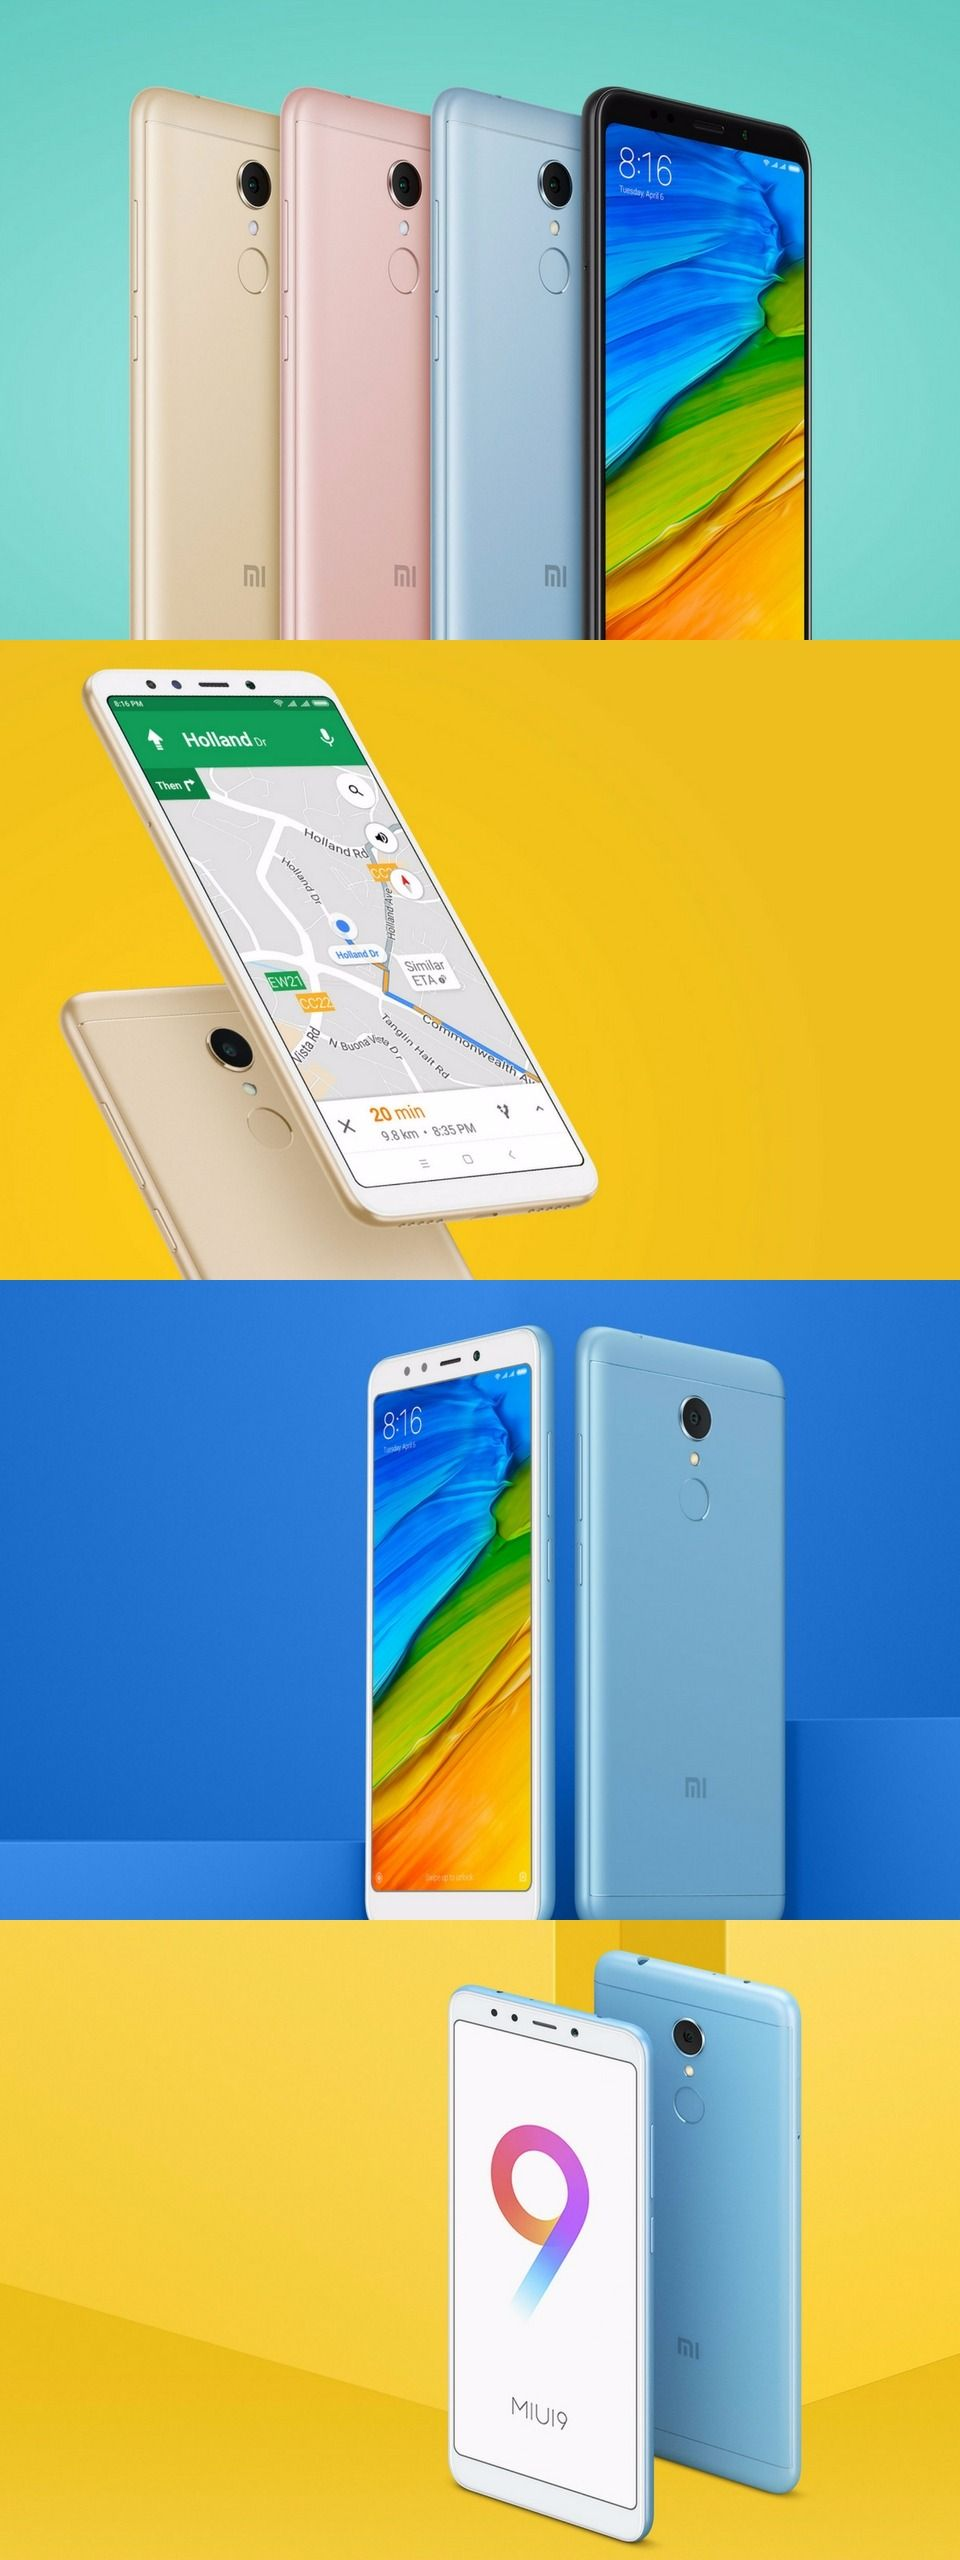 Xiaomi Redmi 5 With 5 7 Inch 18 9 Display Launched in India